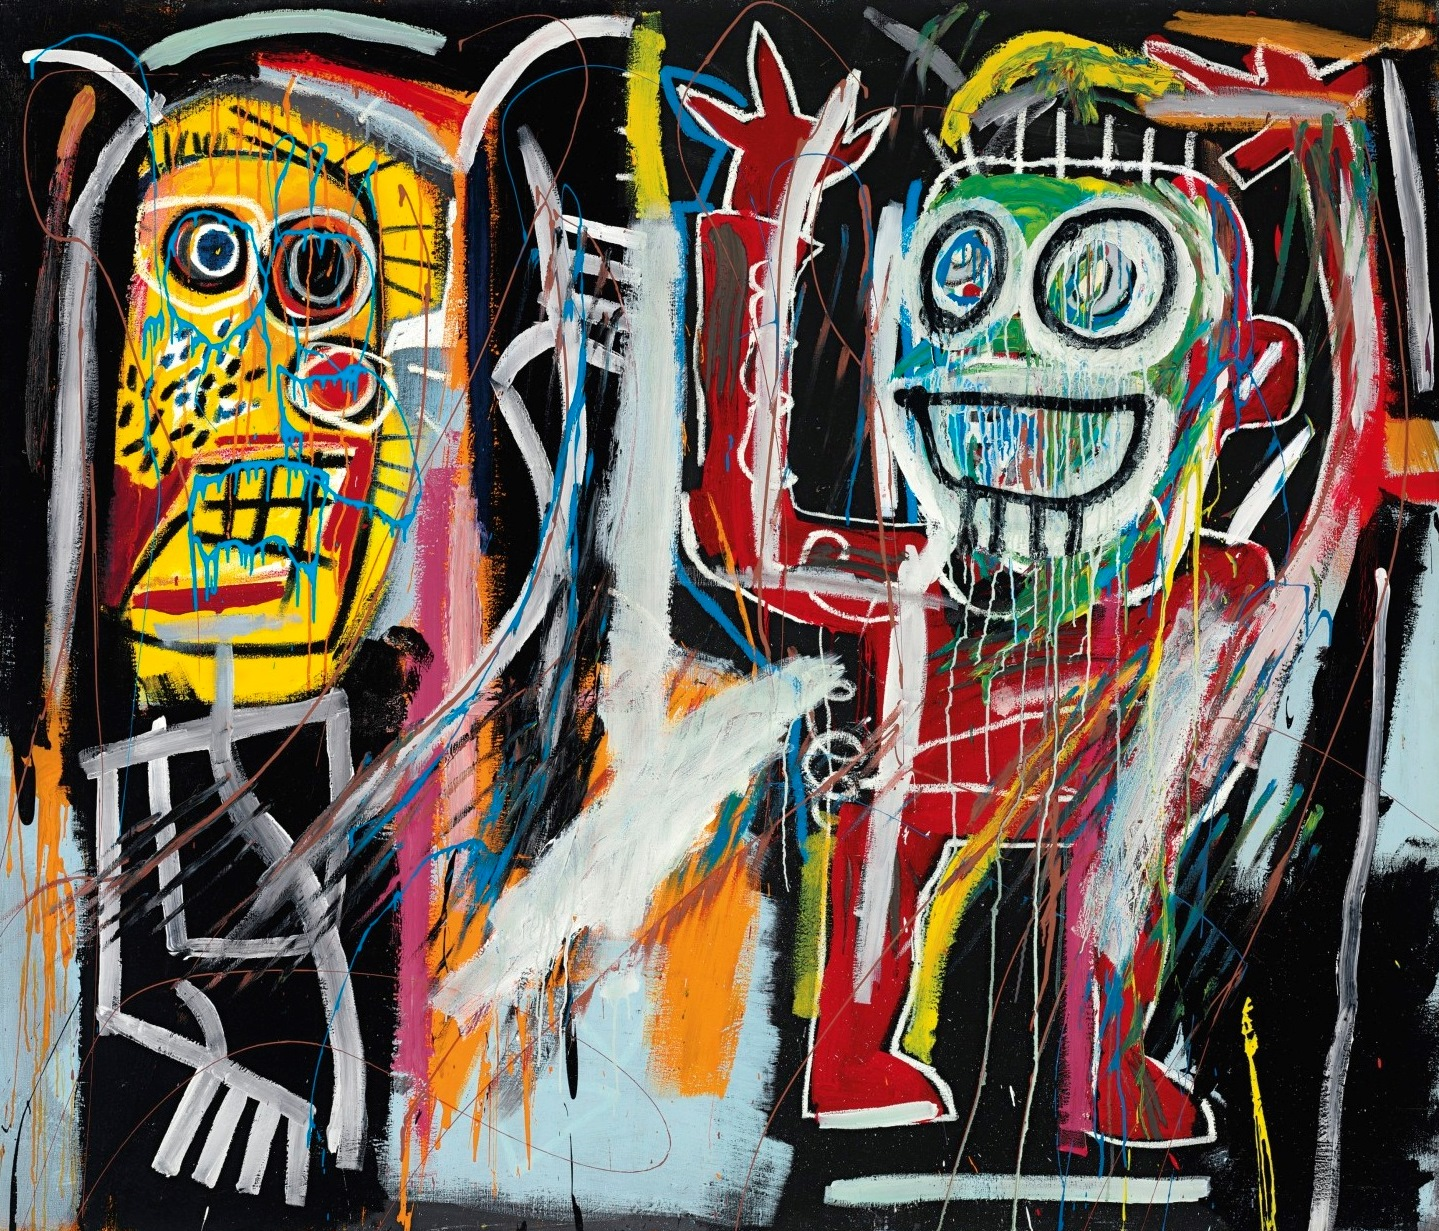 Jean-Michel Basquiat, Dustheads, 1982